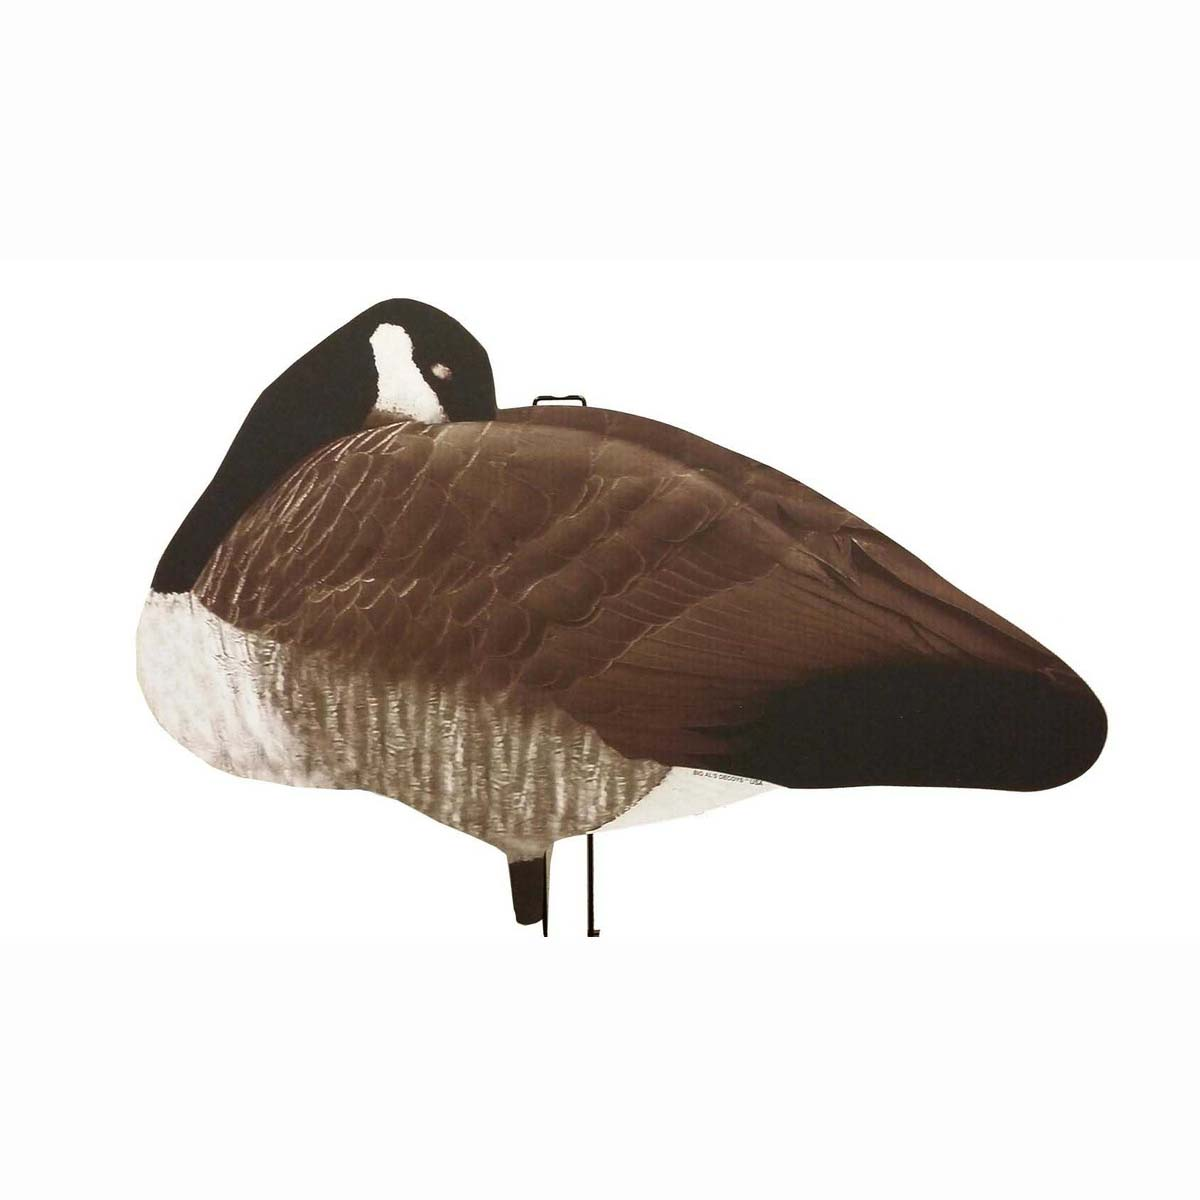 Big Als Decoys Greater Canada Goose Sleeper Silhouettes, 12 Pack_1.jpg